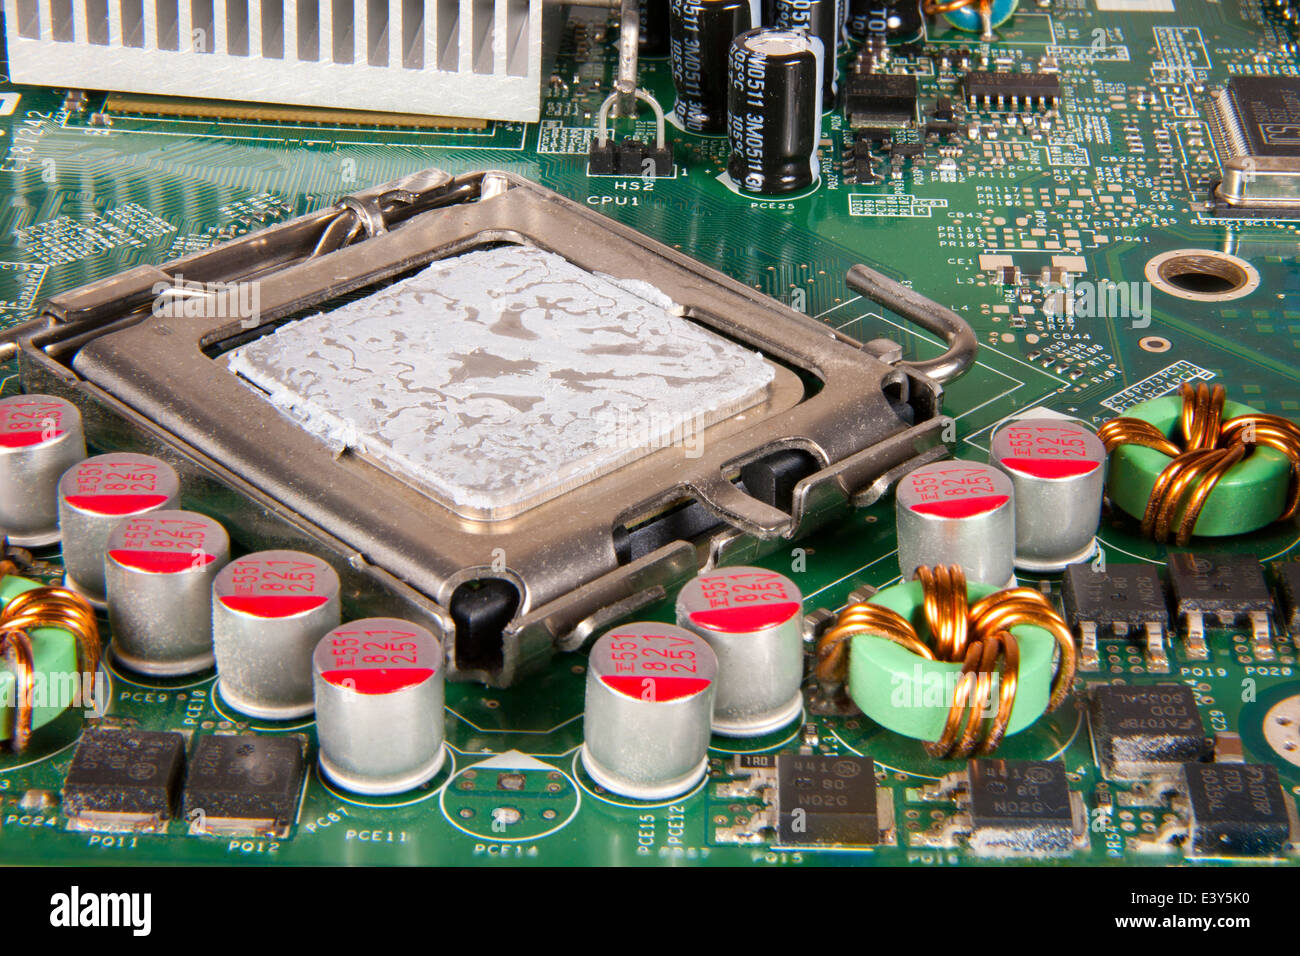 Computer Circuit And Workings Stock Photos & Computer Circuit And ...